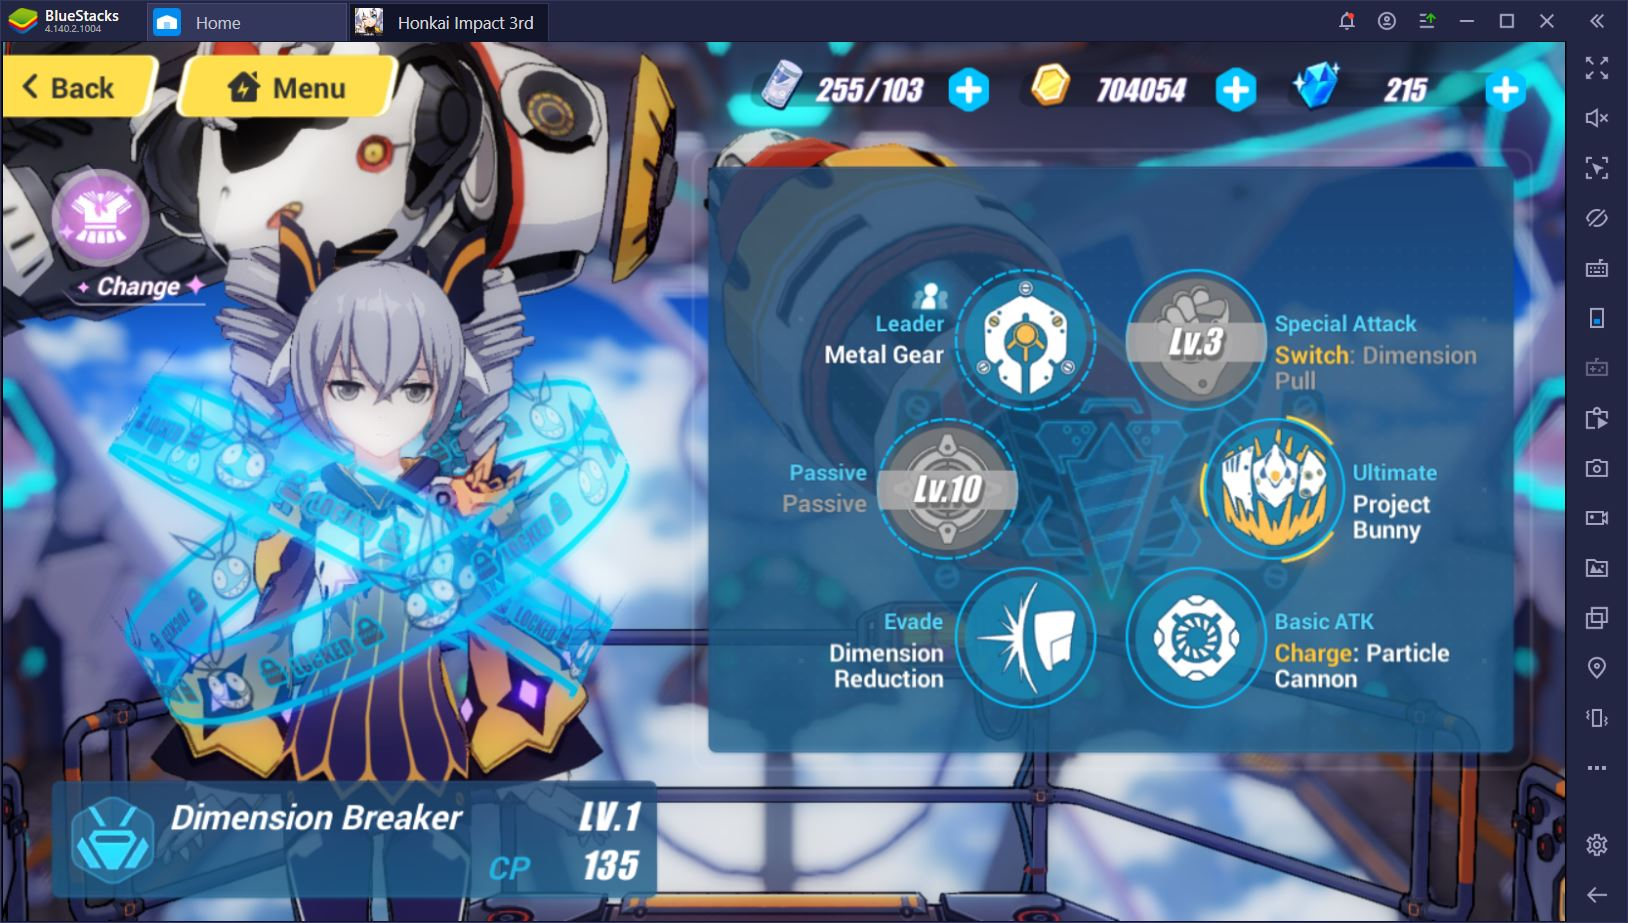 Honkai Impact 3rd on PC: The Best Early Valkyries for F2P Players